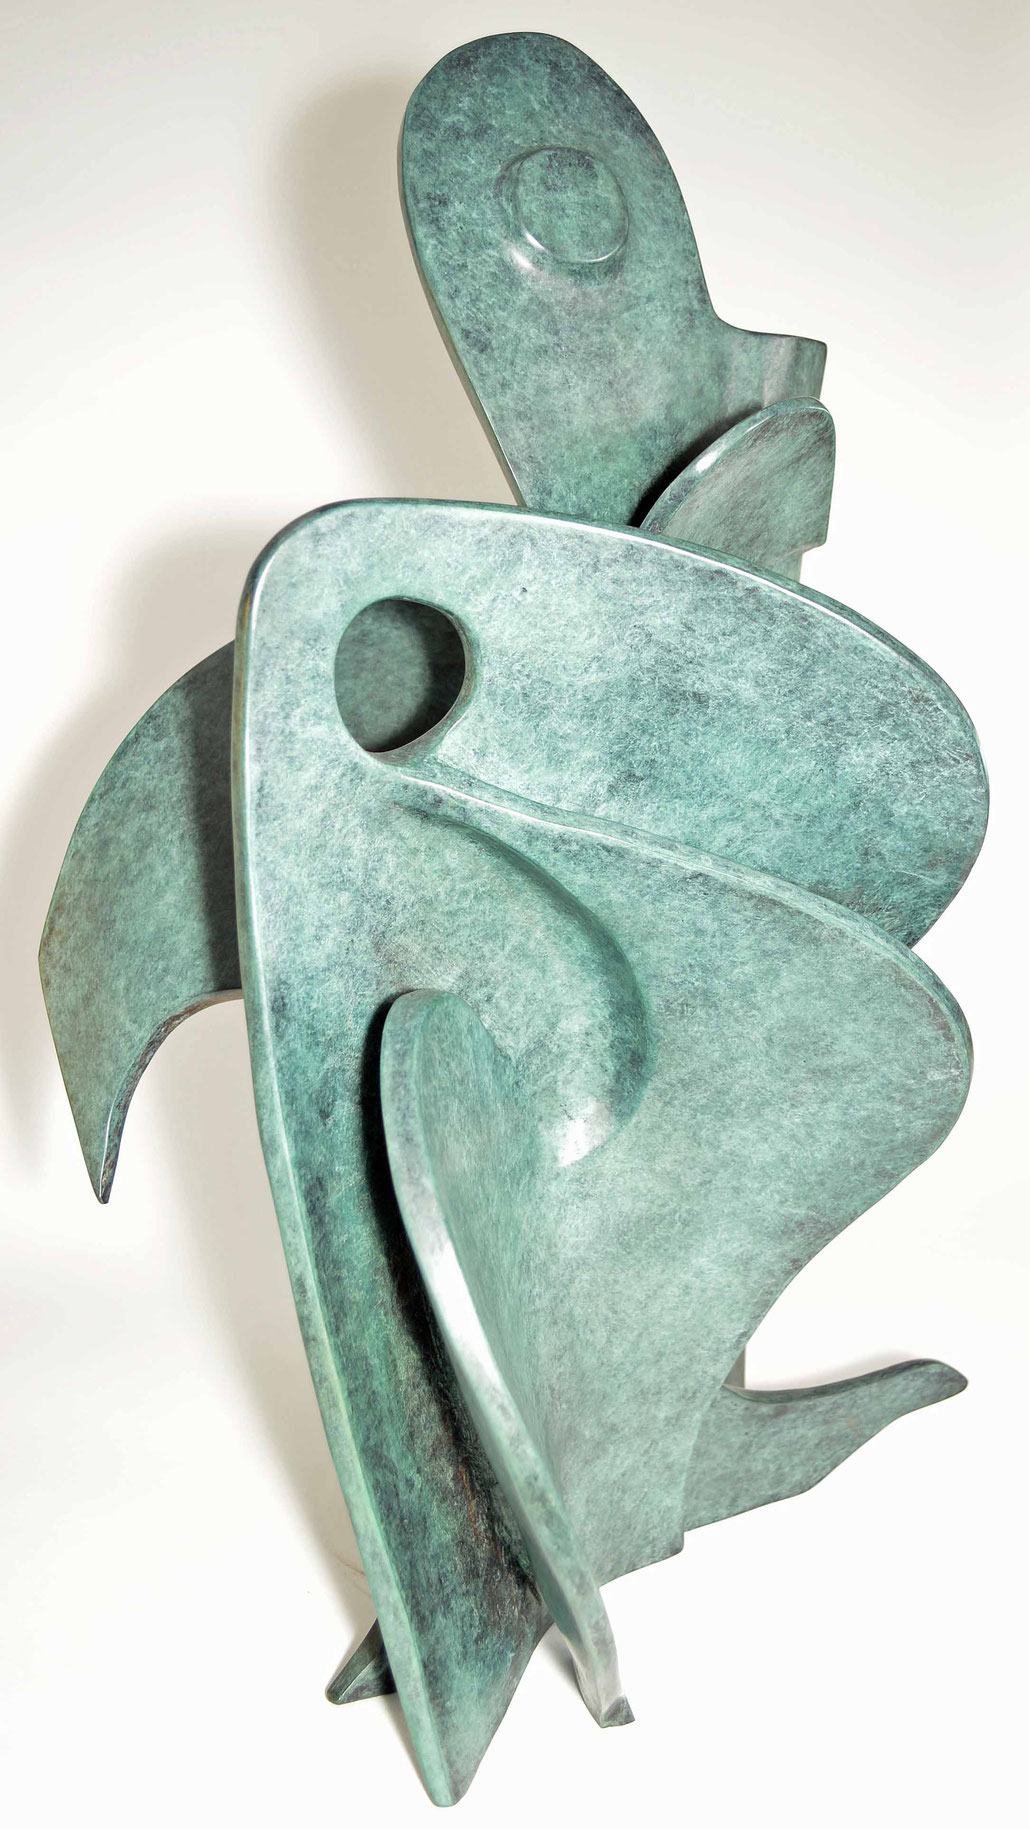 Most of the famous british artists like Henry Moore or Barbara Hepworth worked in bronze. HEX is a Fellow of the Royal British Society of Sculptors.